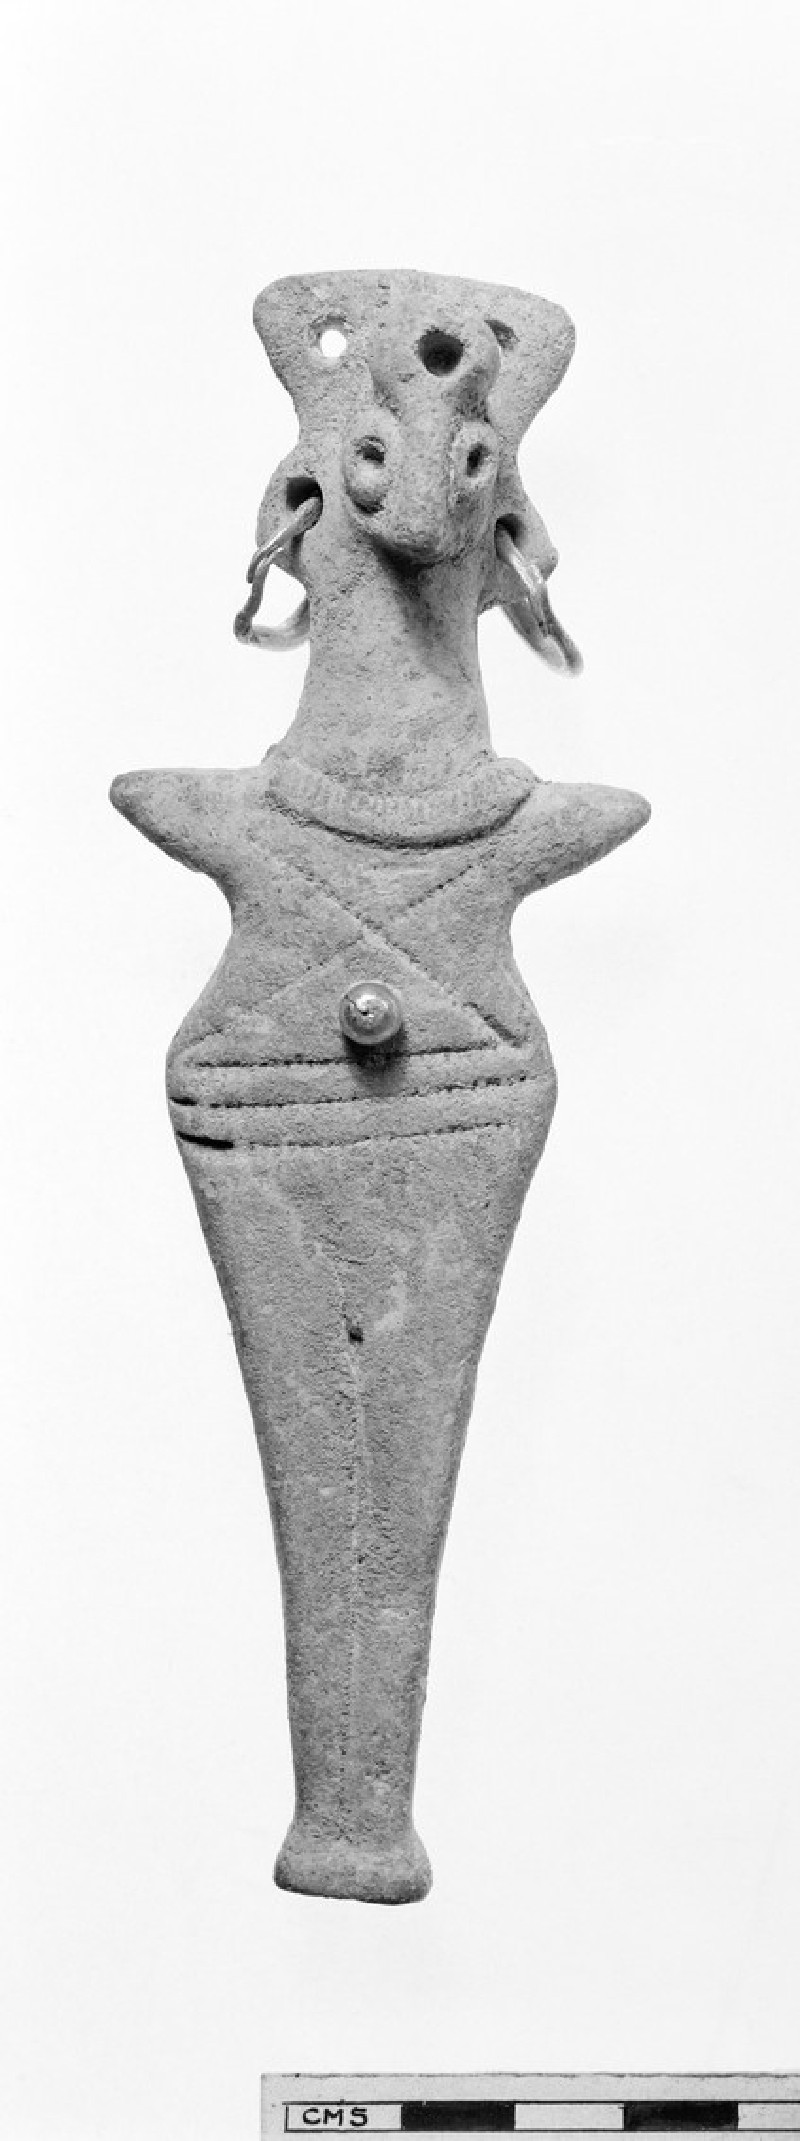 Figurine with bird-like head, flattened body, pointed arms, holes in body and head for gold decoration (AN1933.1182)